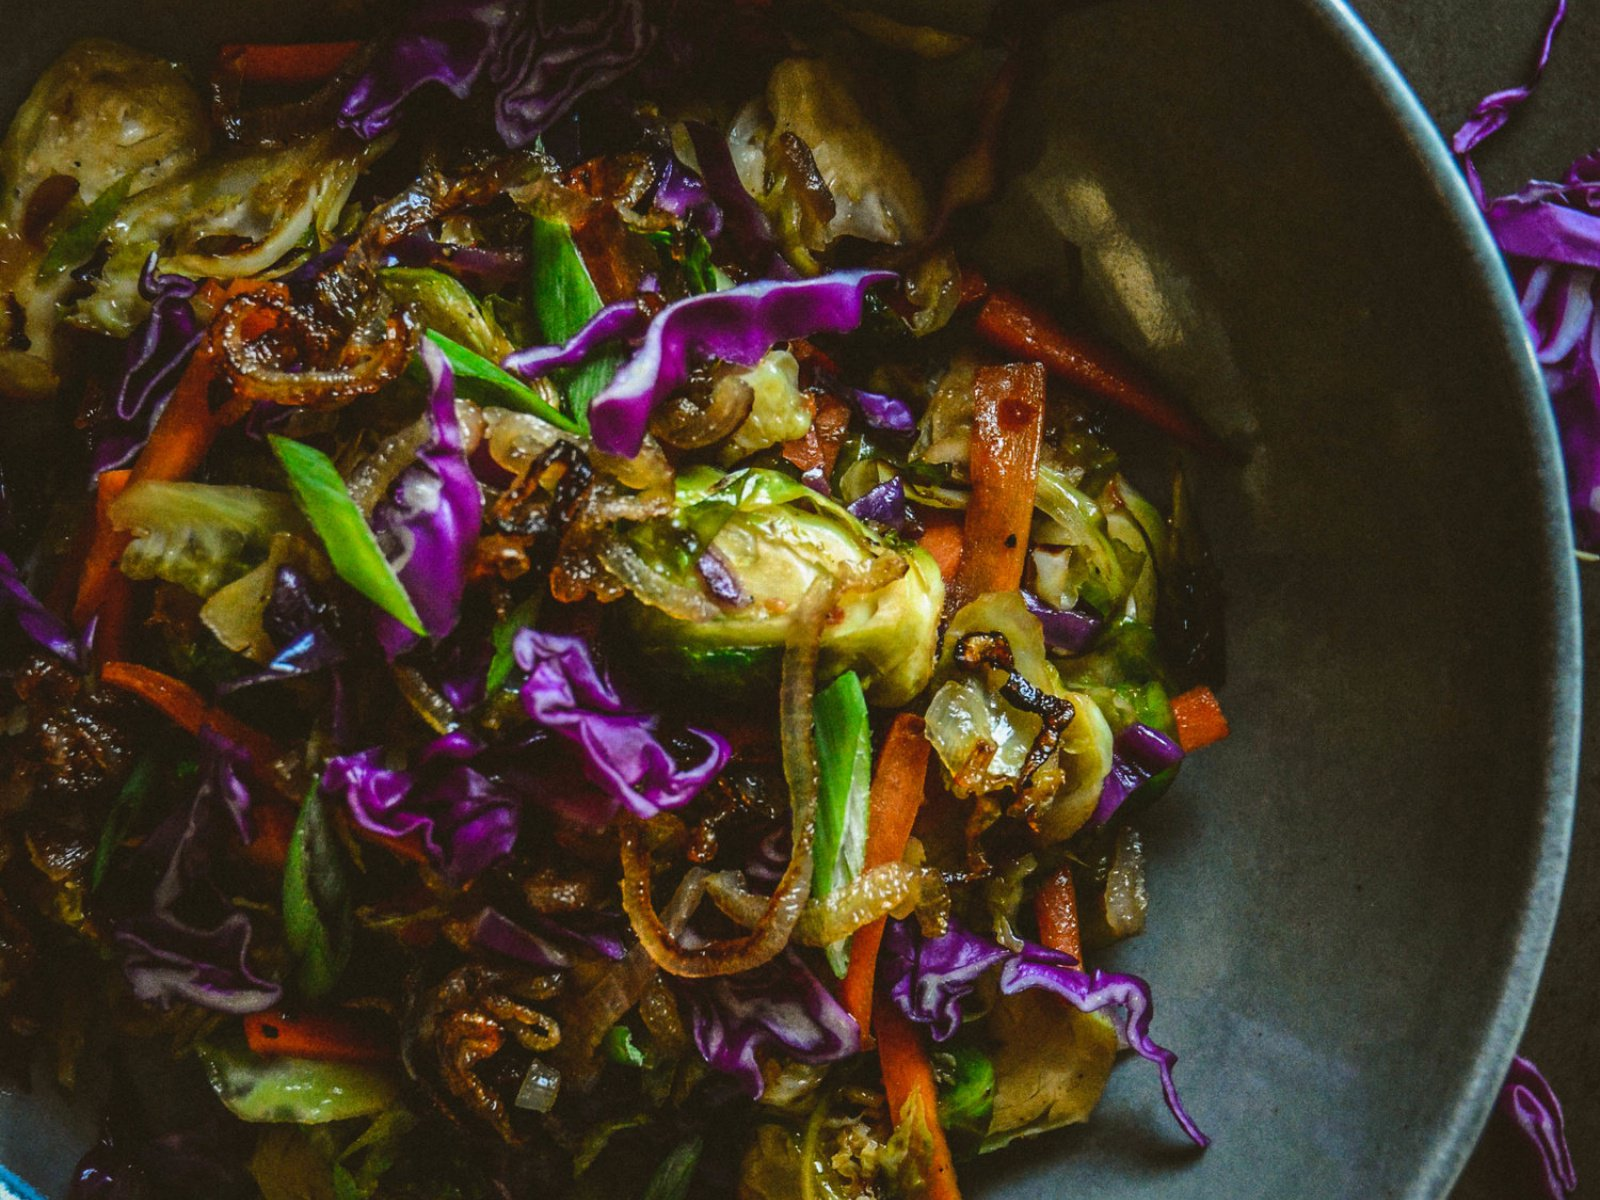 Vegan Brussels Sprouts Salad With Red Cabbage and Sweet Chili Sauce